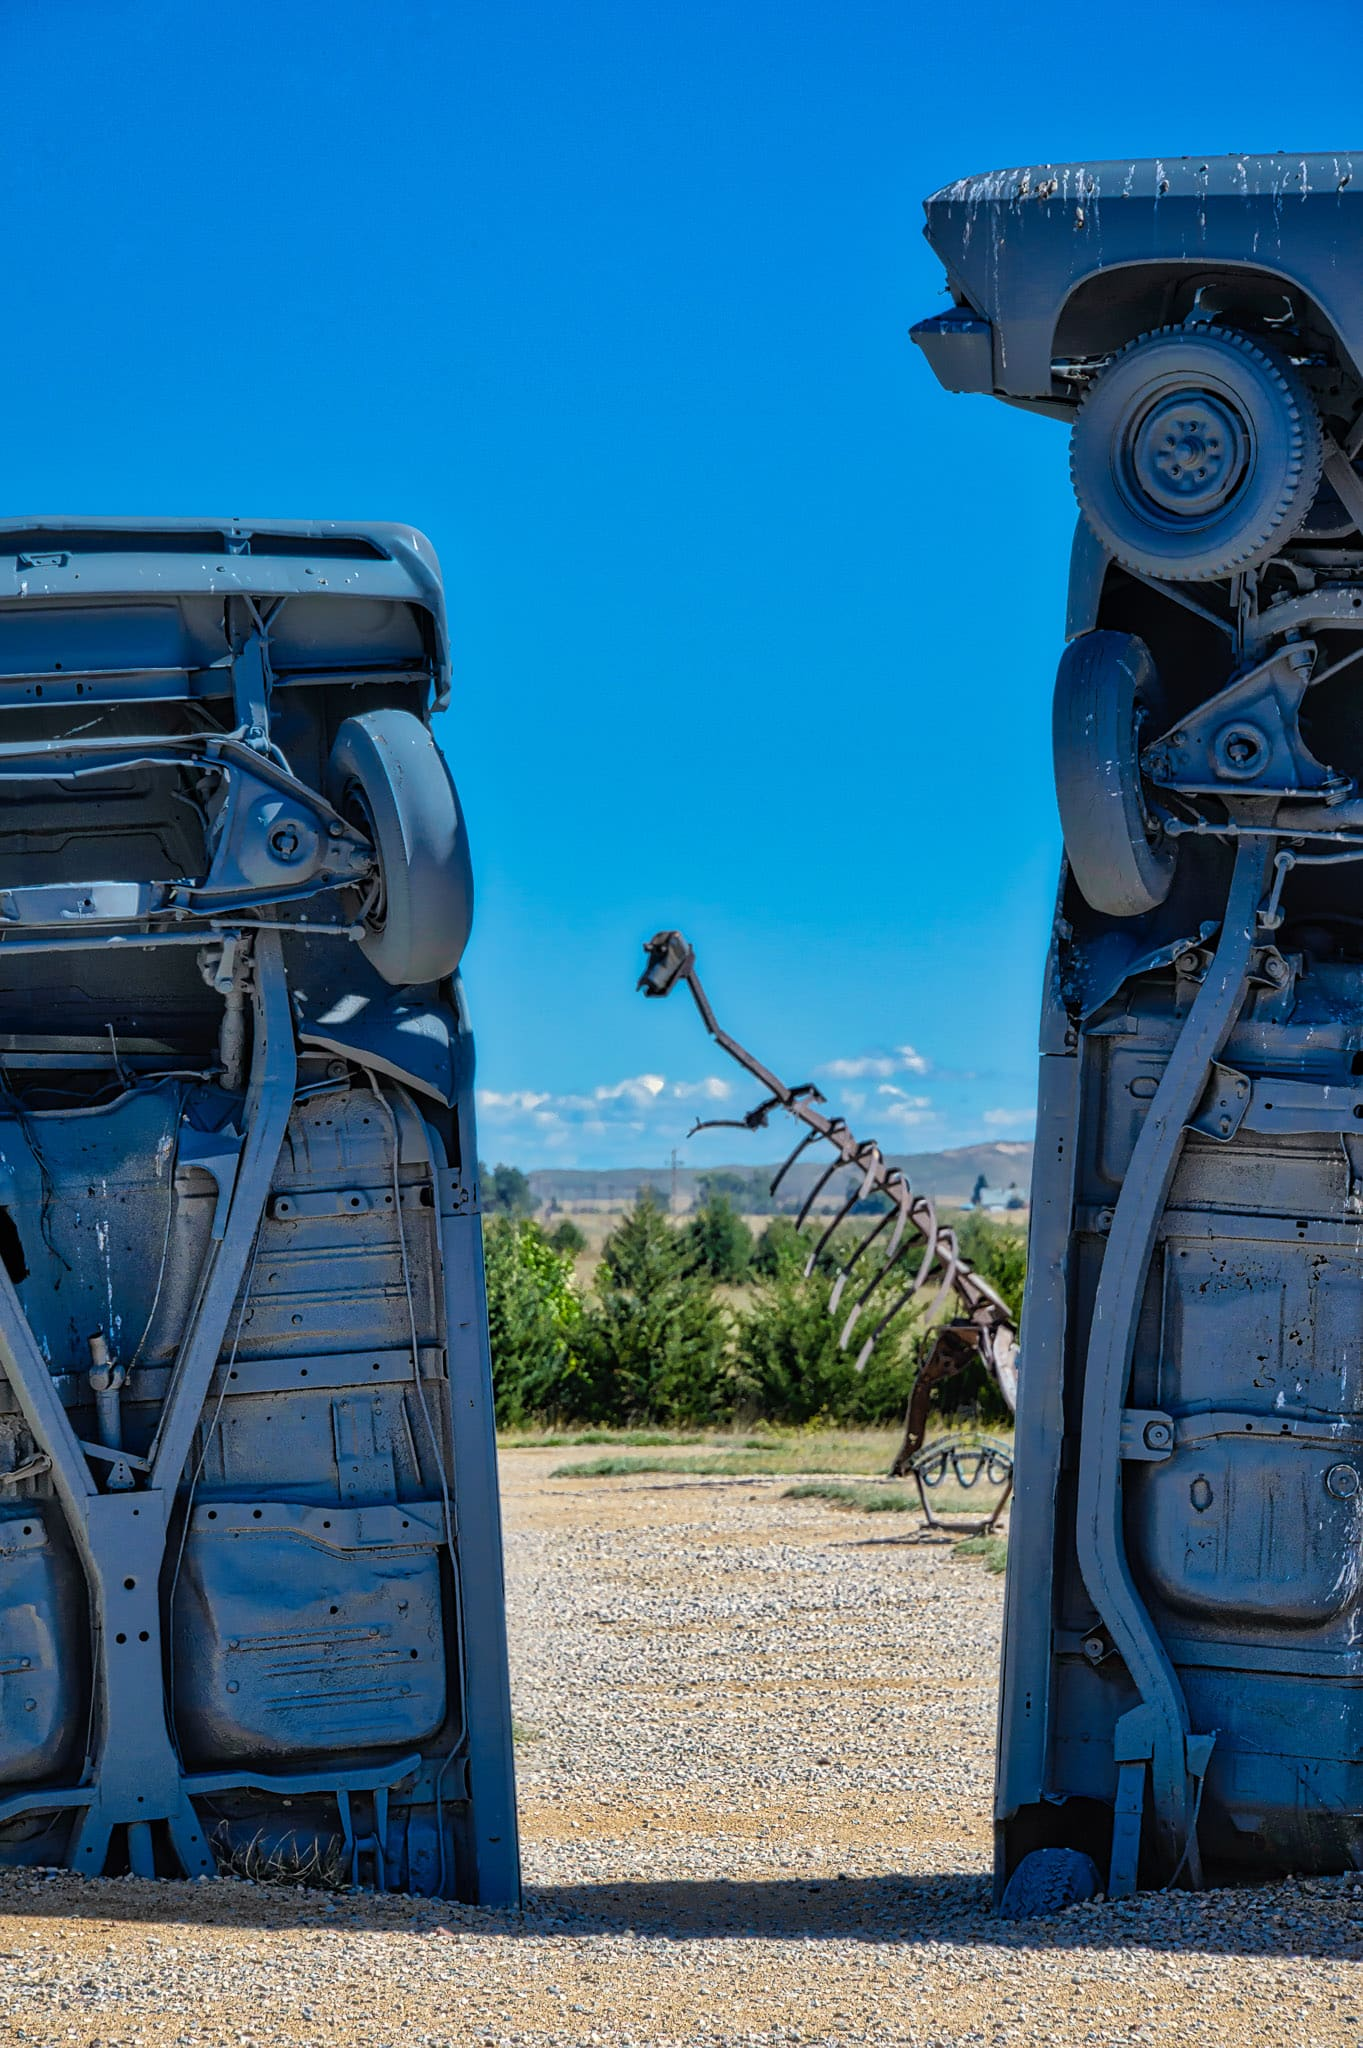 On the flat plains near Alliance, Nebraska, is a quirky roadside attraction called Carhenge. Built by Jim Reinders as a memorial to his father, it was dedicated at the June 1987 summer solstice.